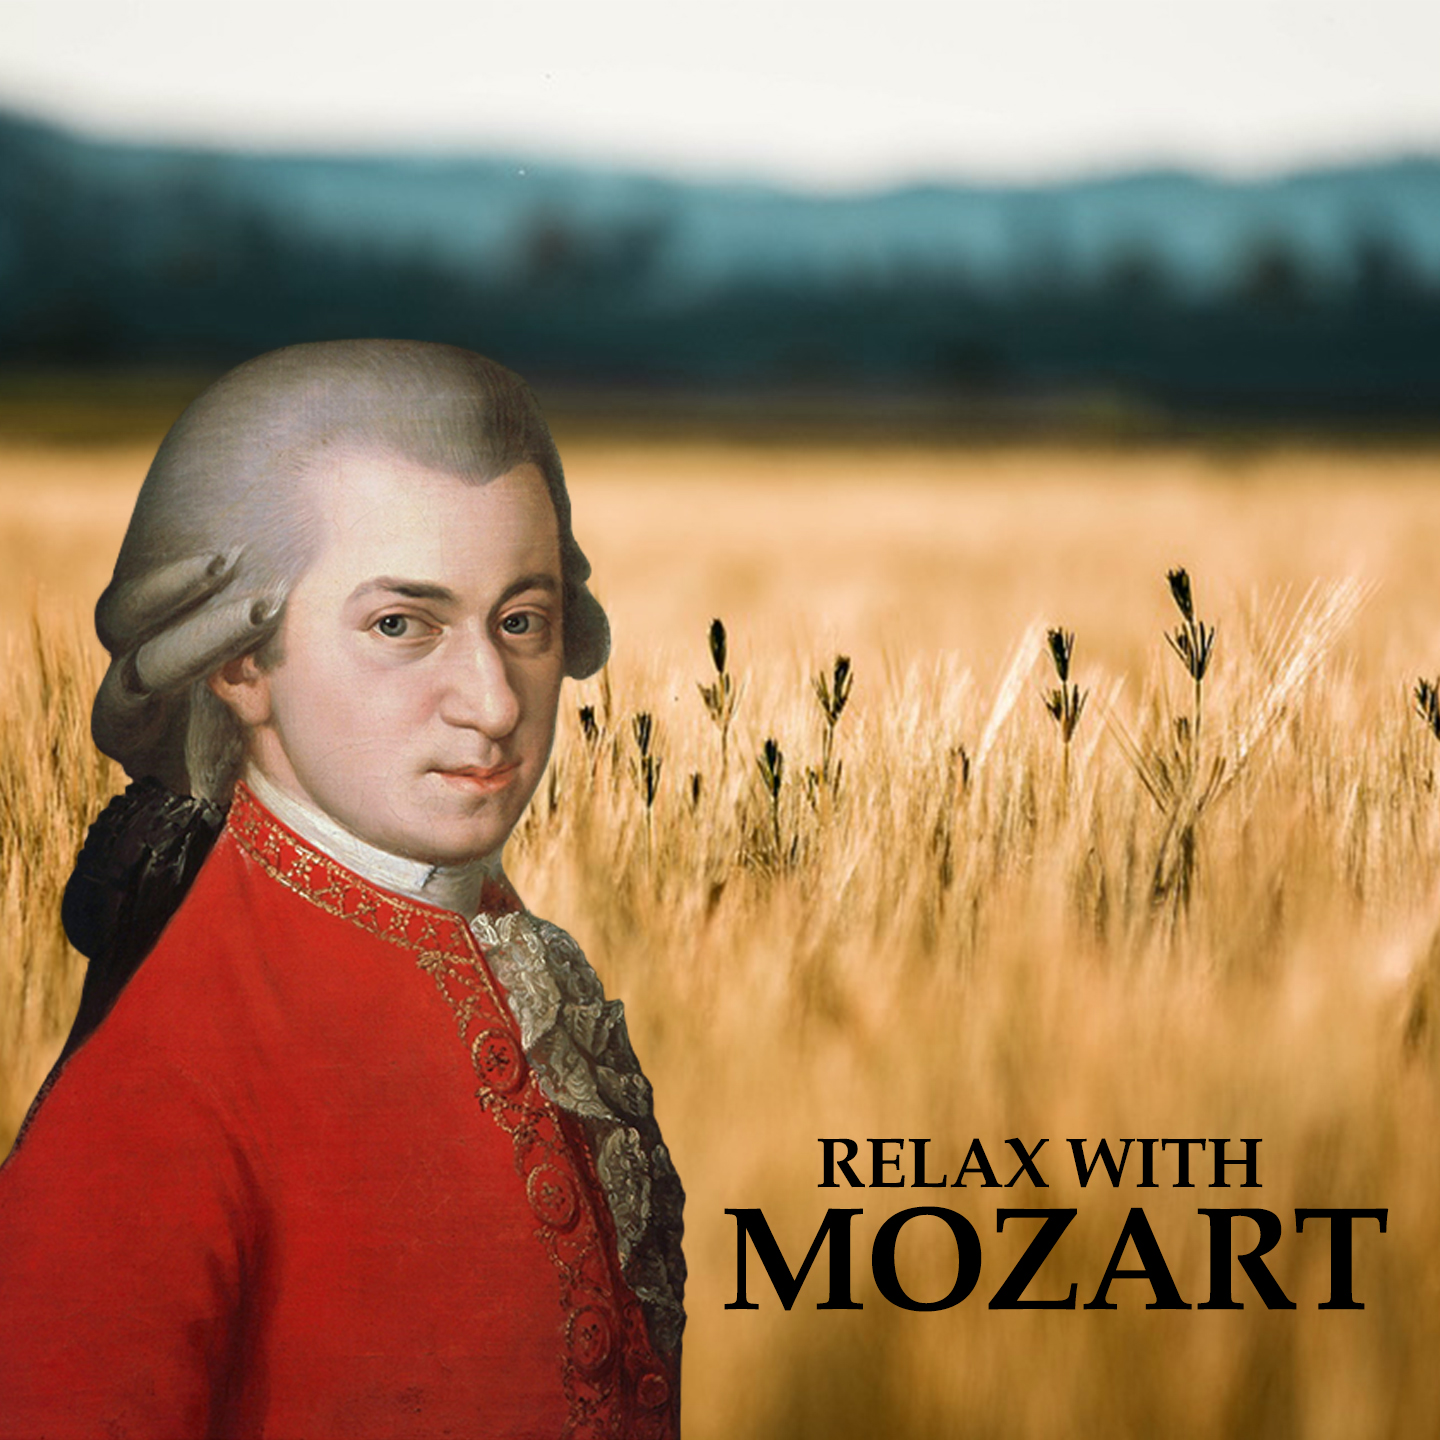 Mozart for Studying, Concentration, Relaxation